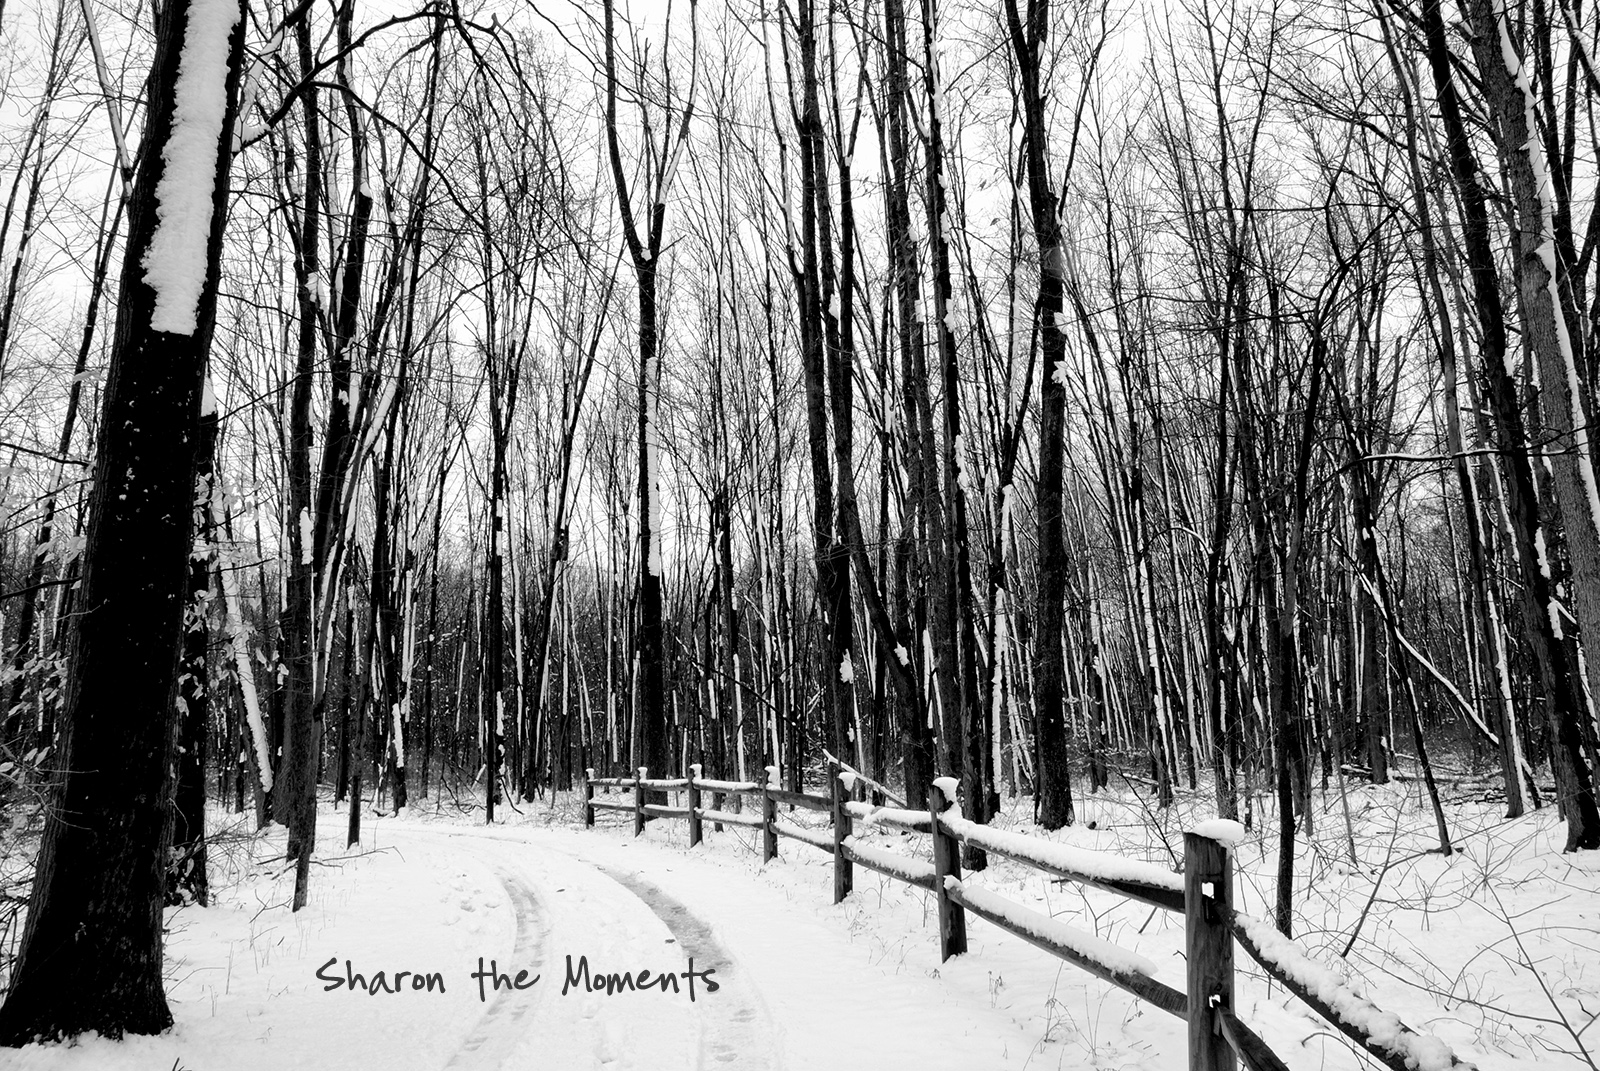 Favorite Photo Friday Snow Day at Sharon Woods and Inniswood Park|Sharon the Moments blog